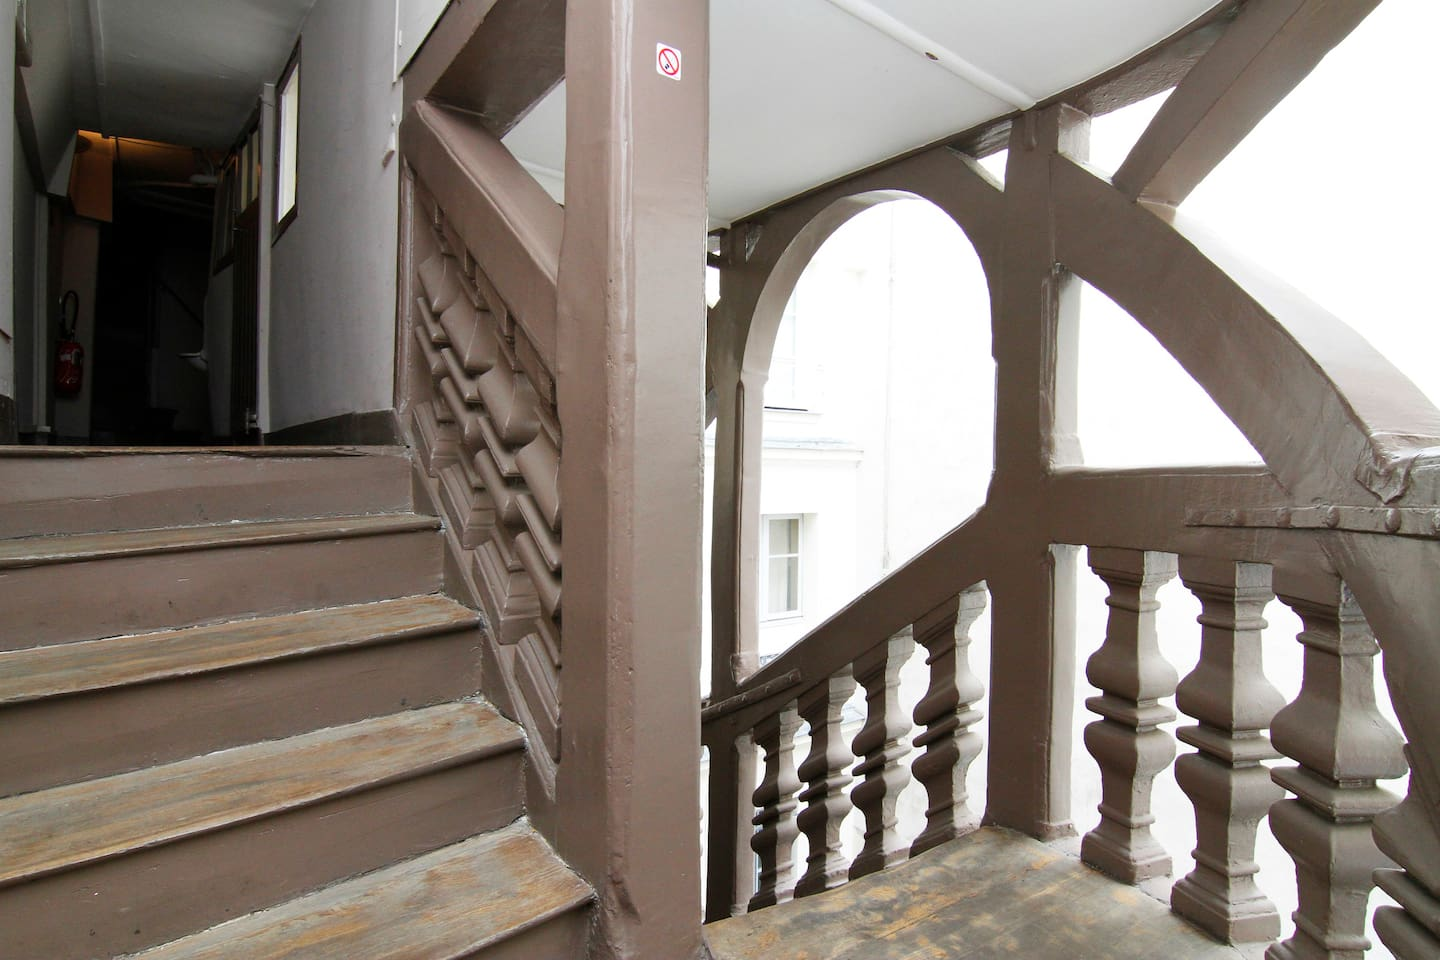 The stairs are 400 years old!